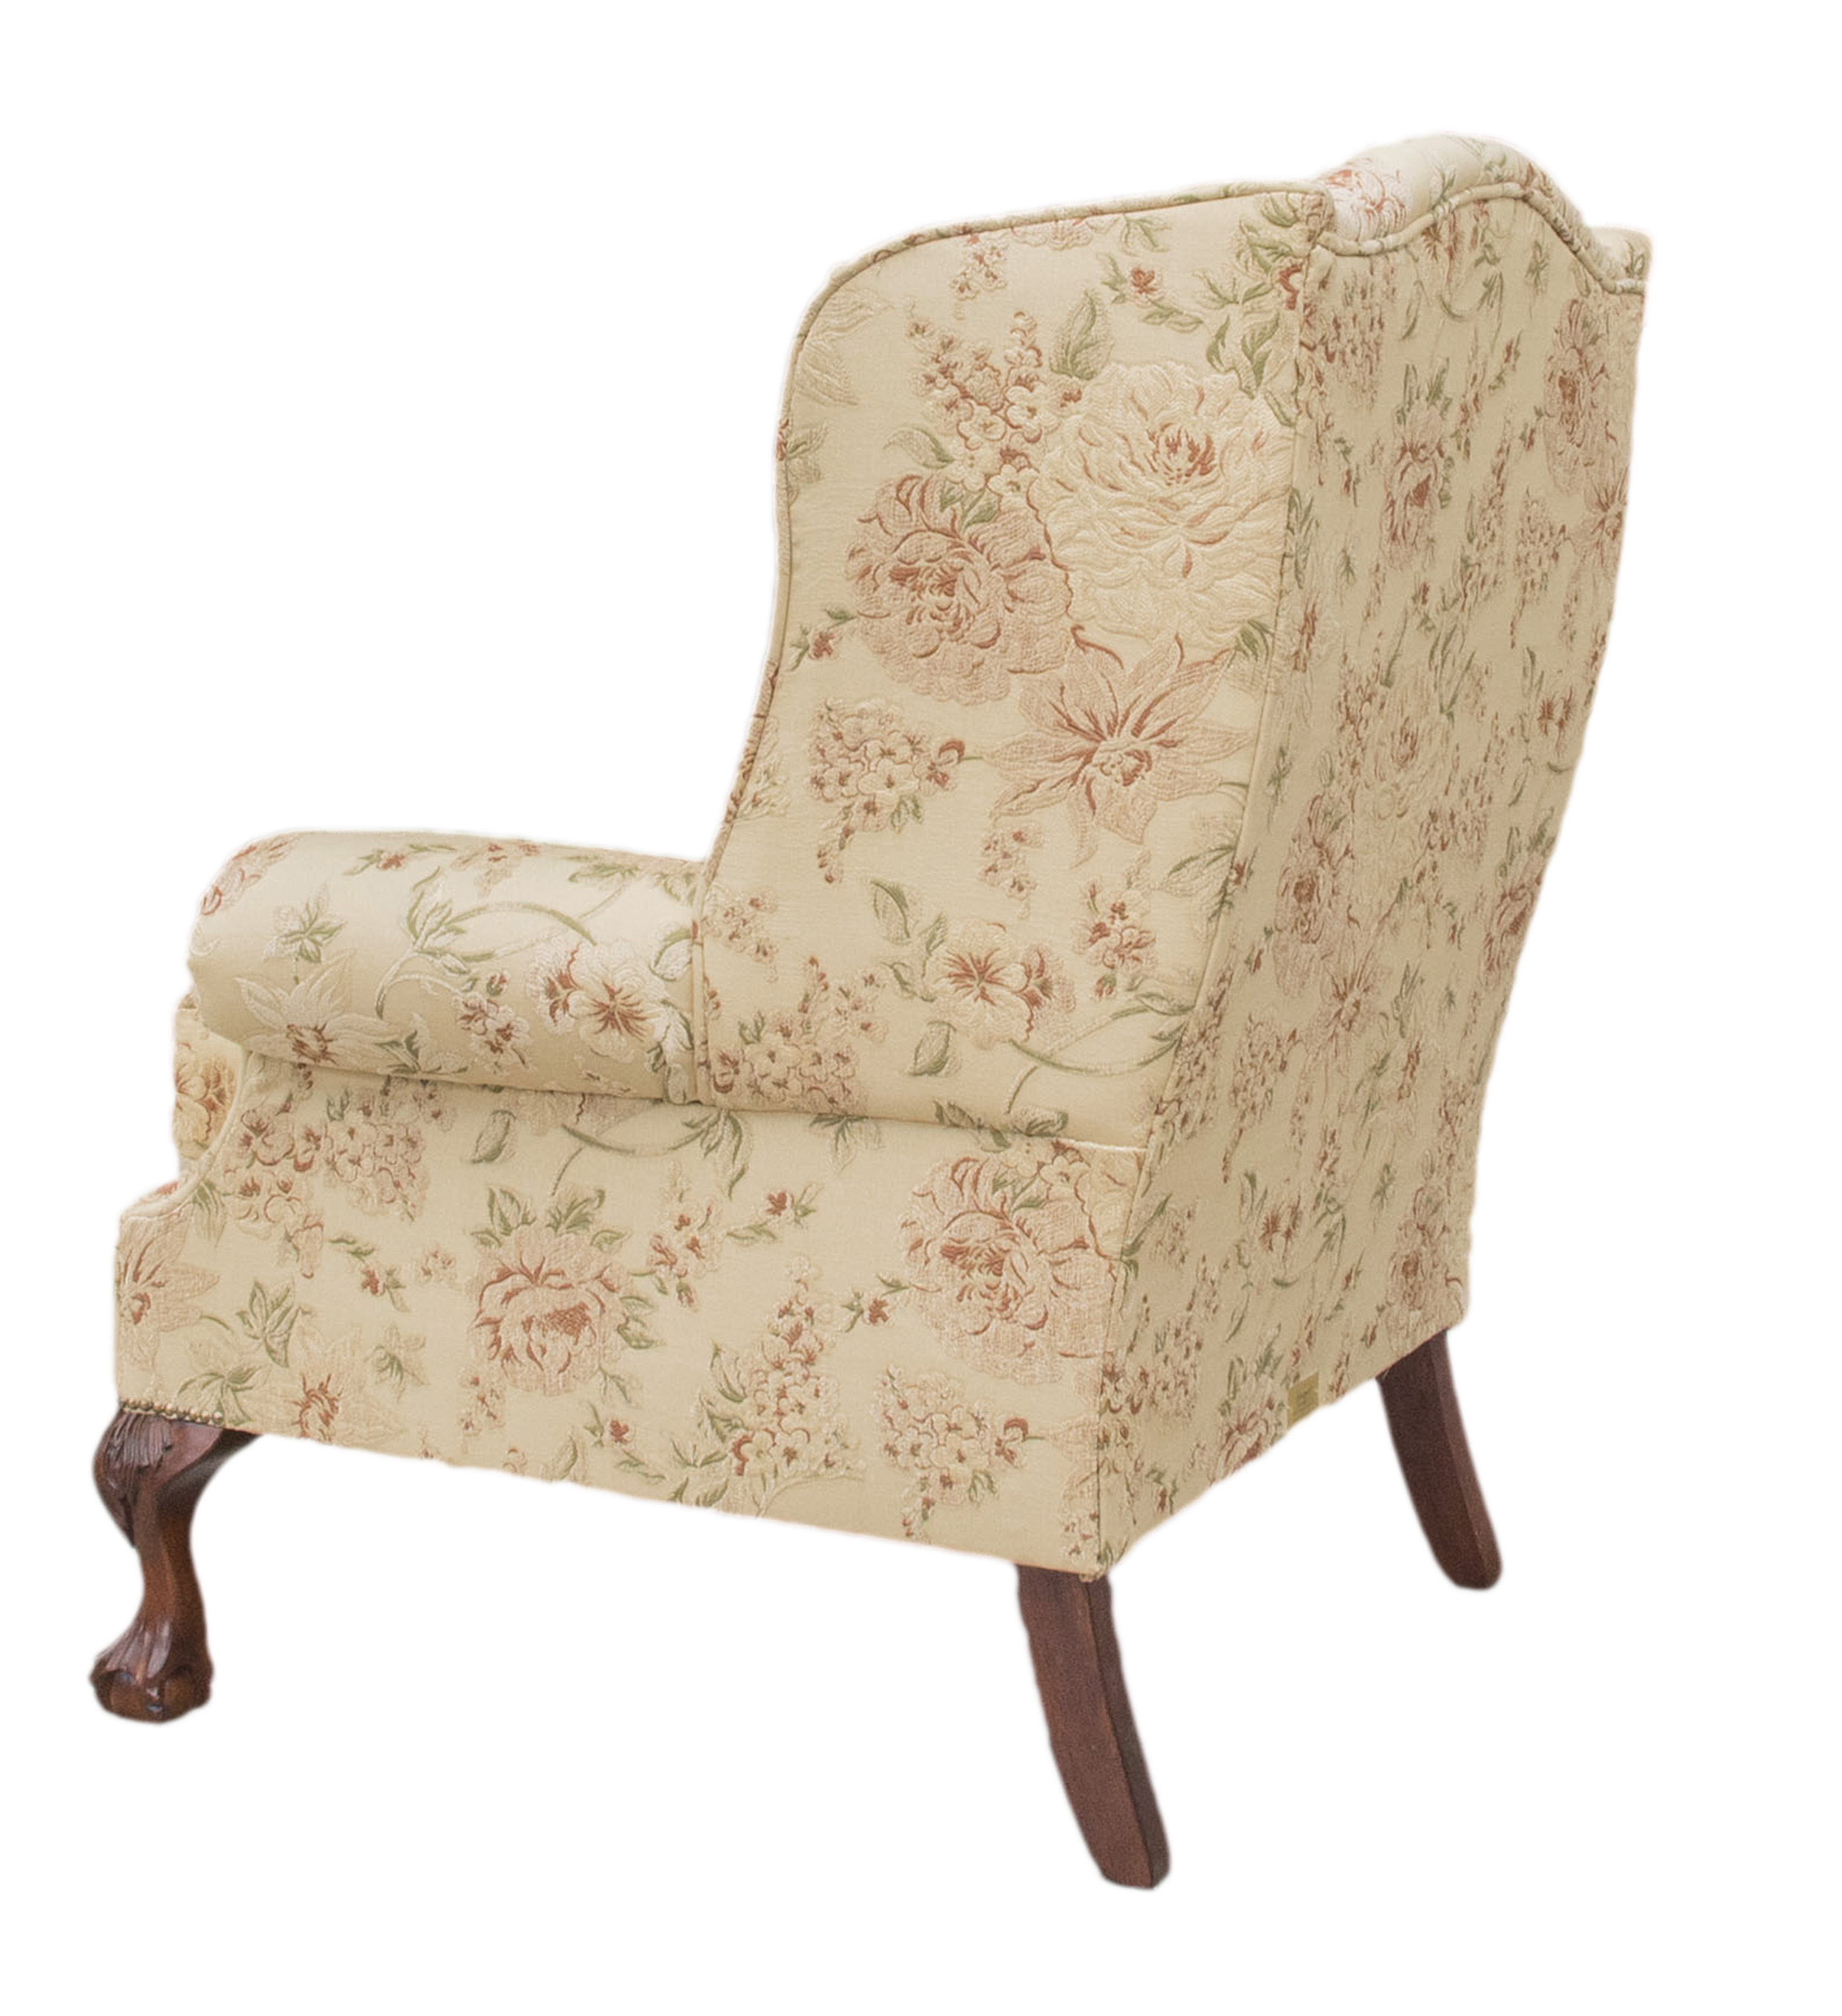 King-Chair-Semi-ramis-pattern-Platinum-Collection-back